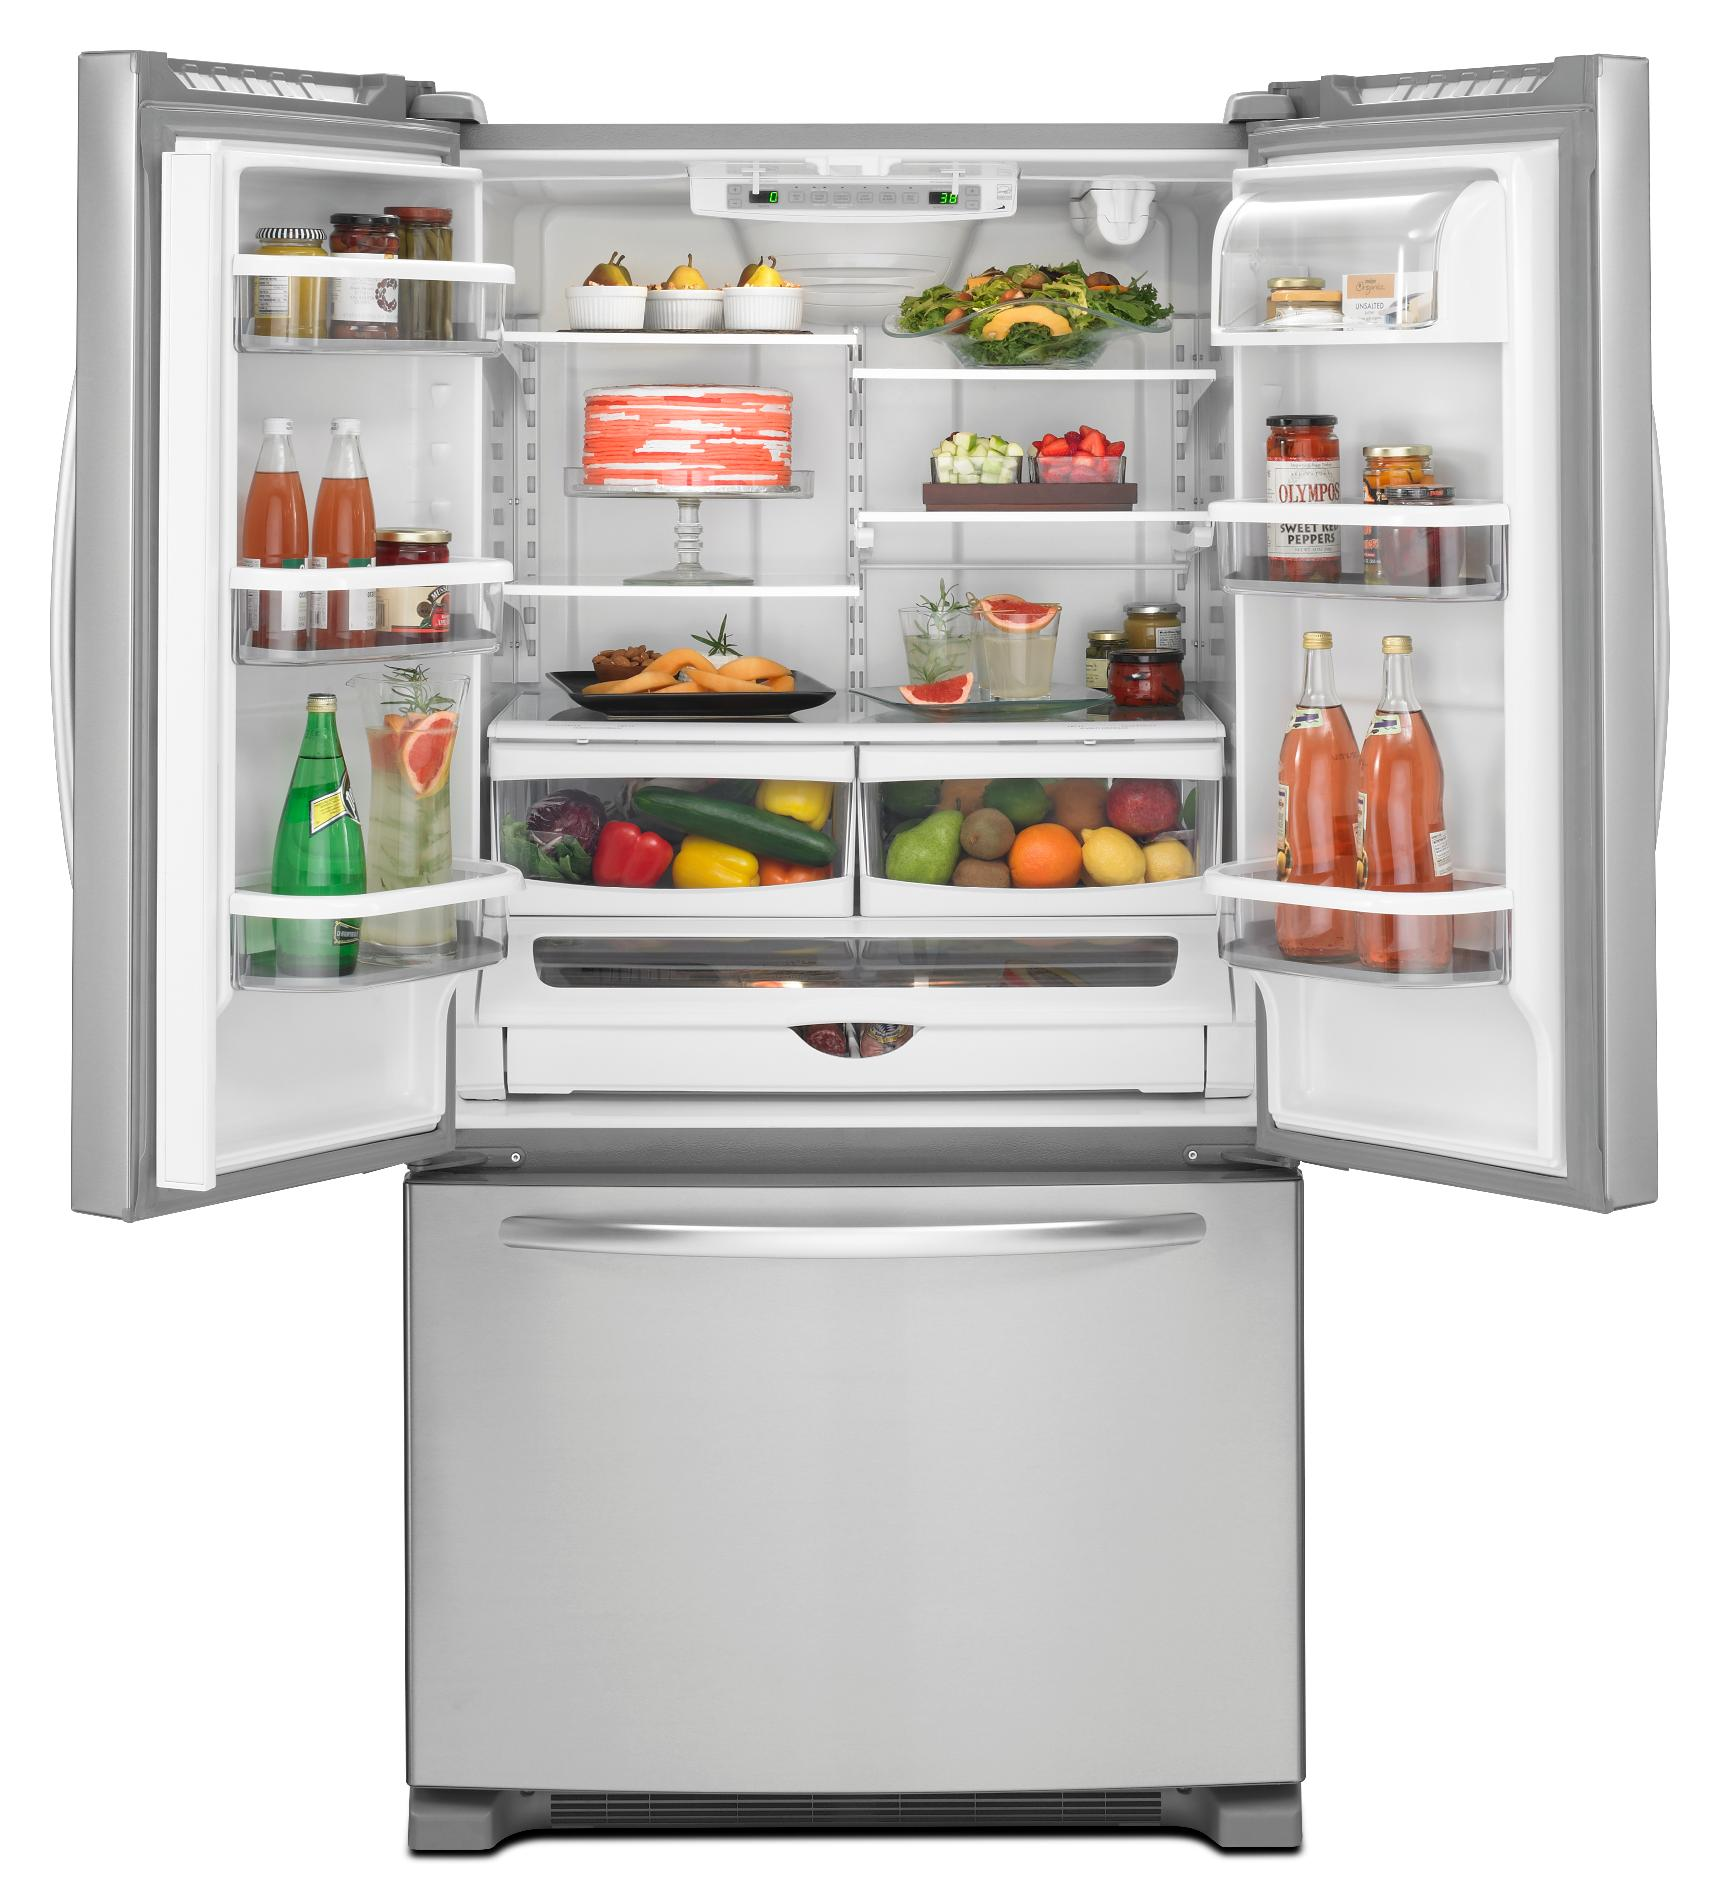 KitchenAid 20.0 cu. ft. Counter-Depth French Door Refrigerator - Stainless Steel